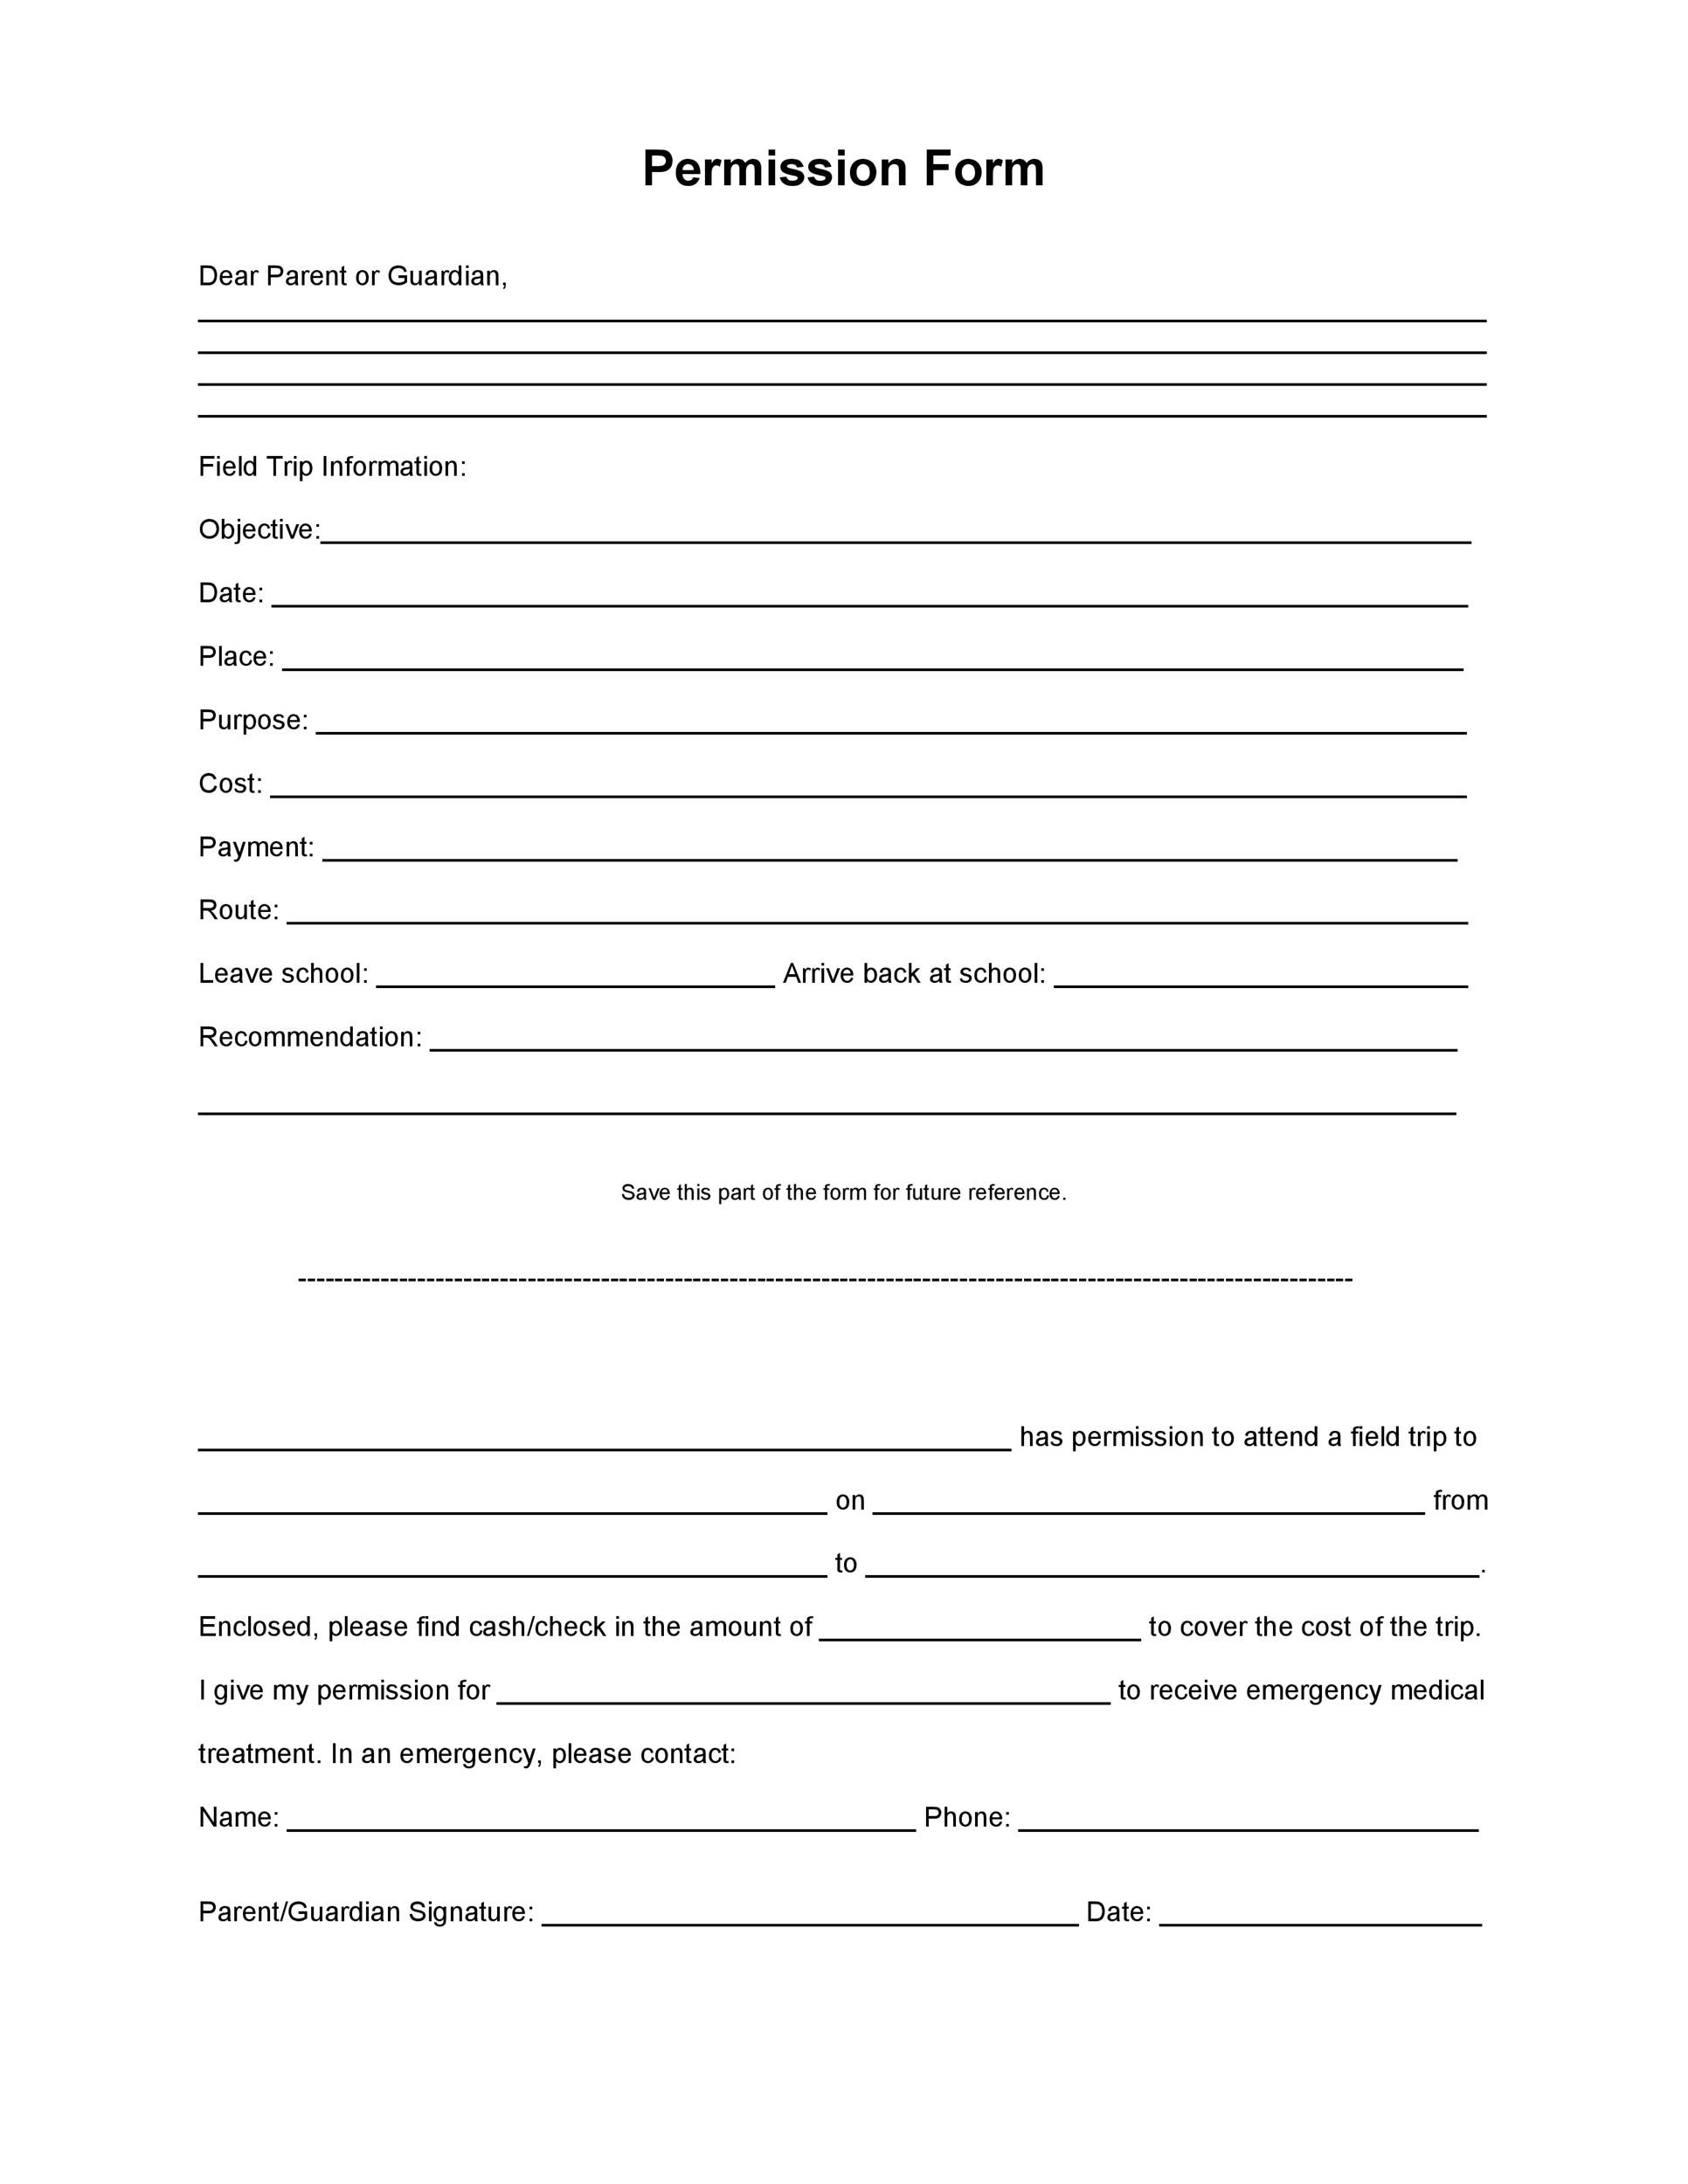 35 permission slip templates field trip forms for Generic consent form template